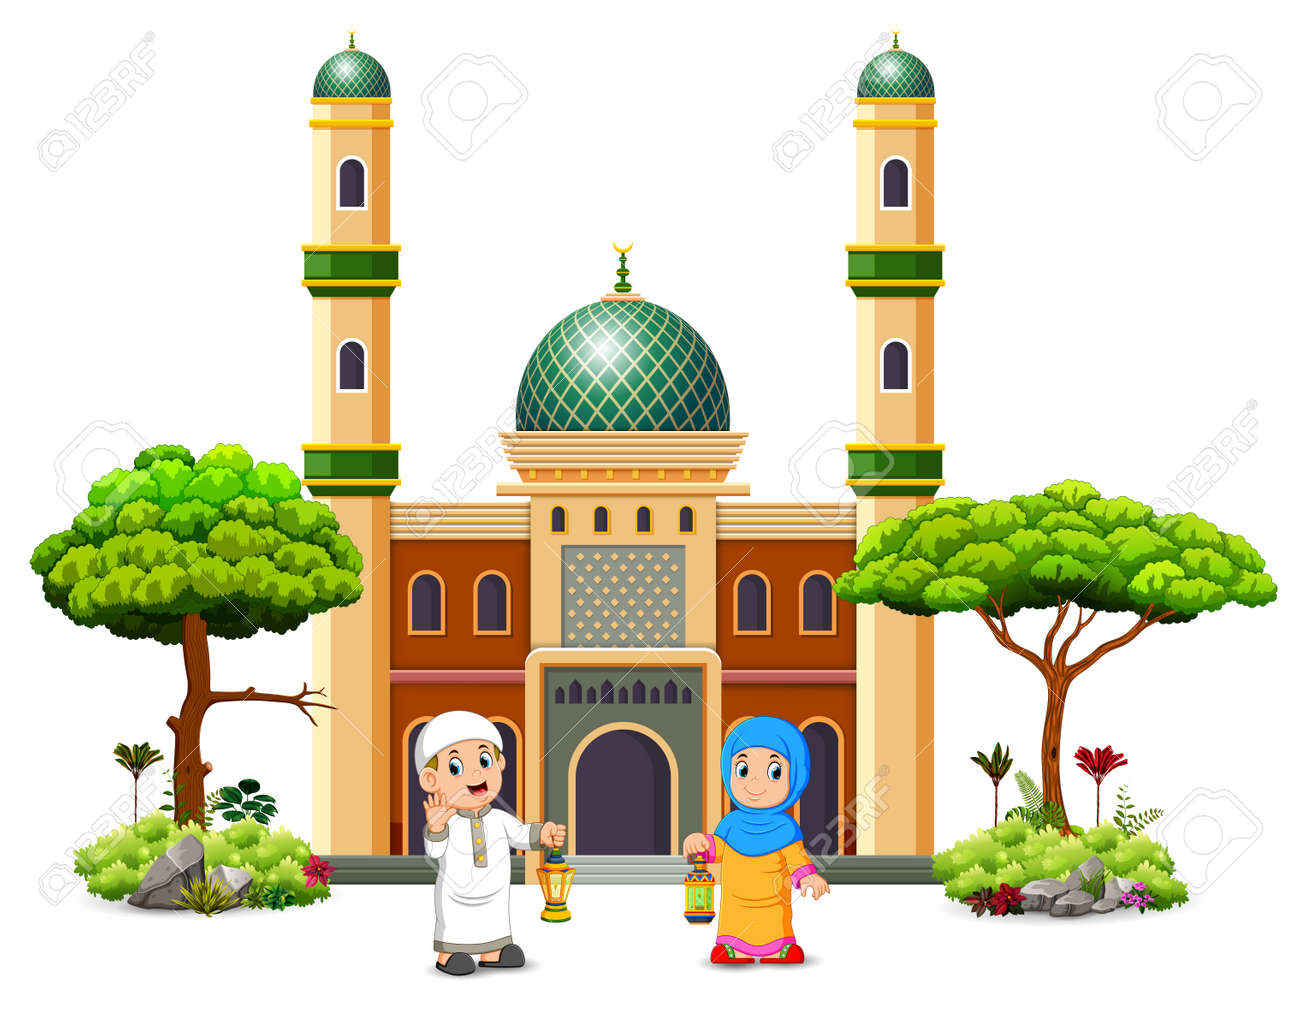 the boy and the girl are holding the ramadhan lantern in front of the green mosque - 120724354